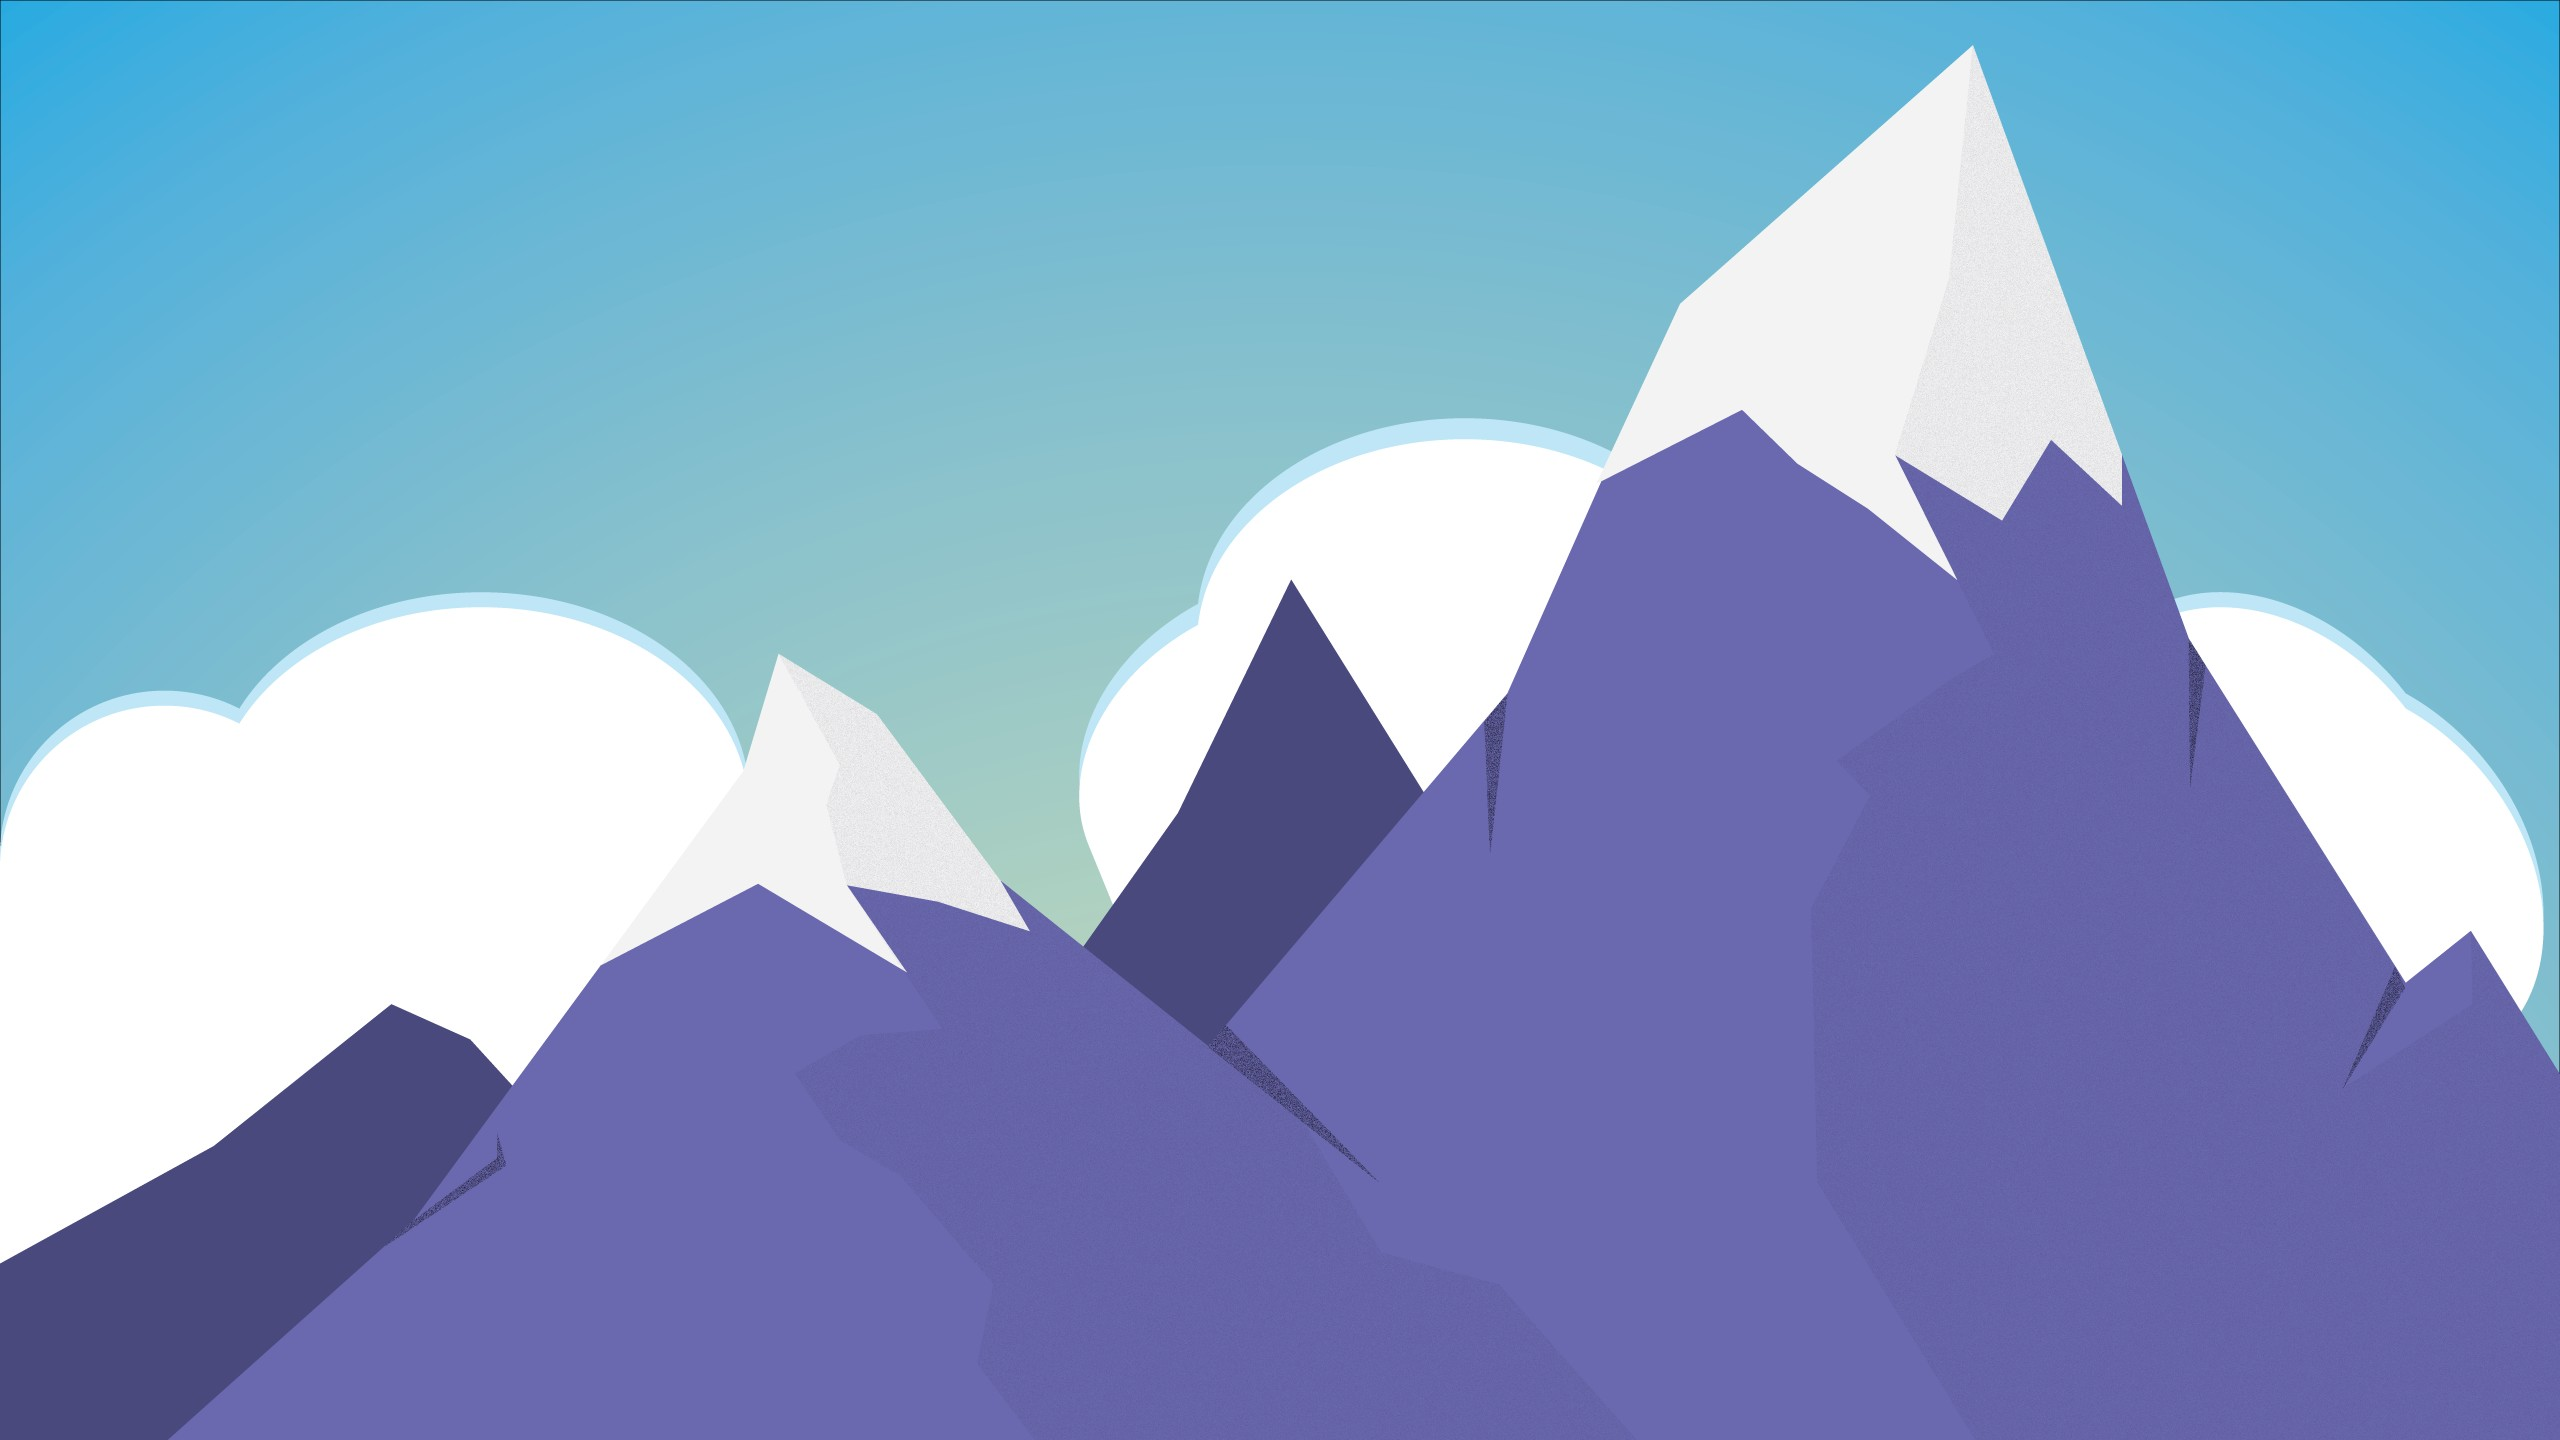 Cliparts for you clipartpost. Clipart mountains mountain slope